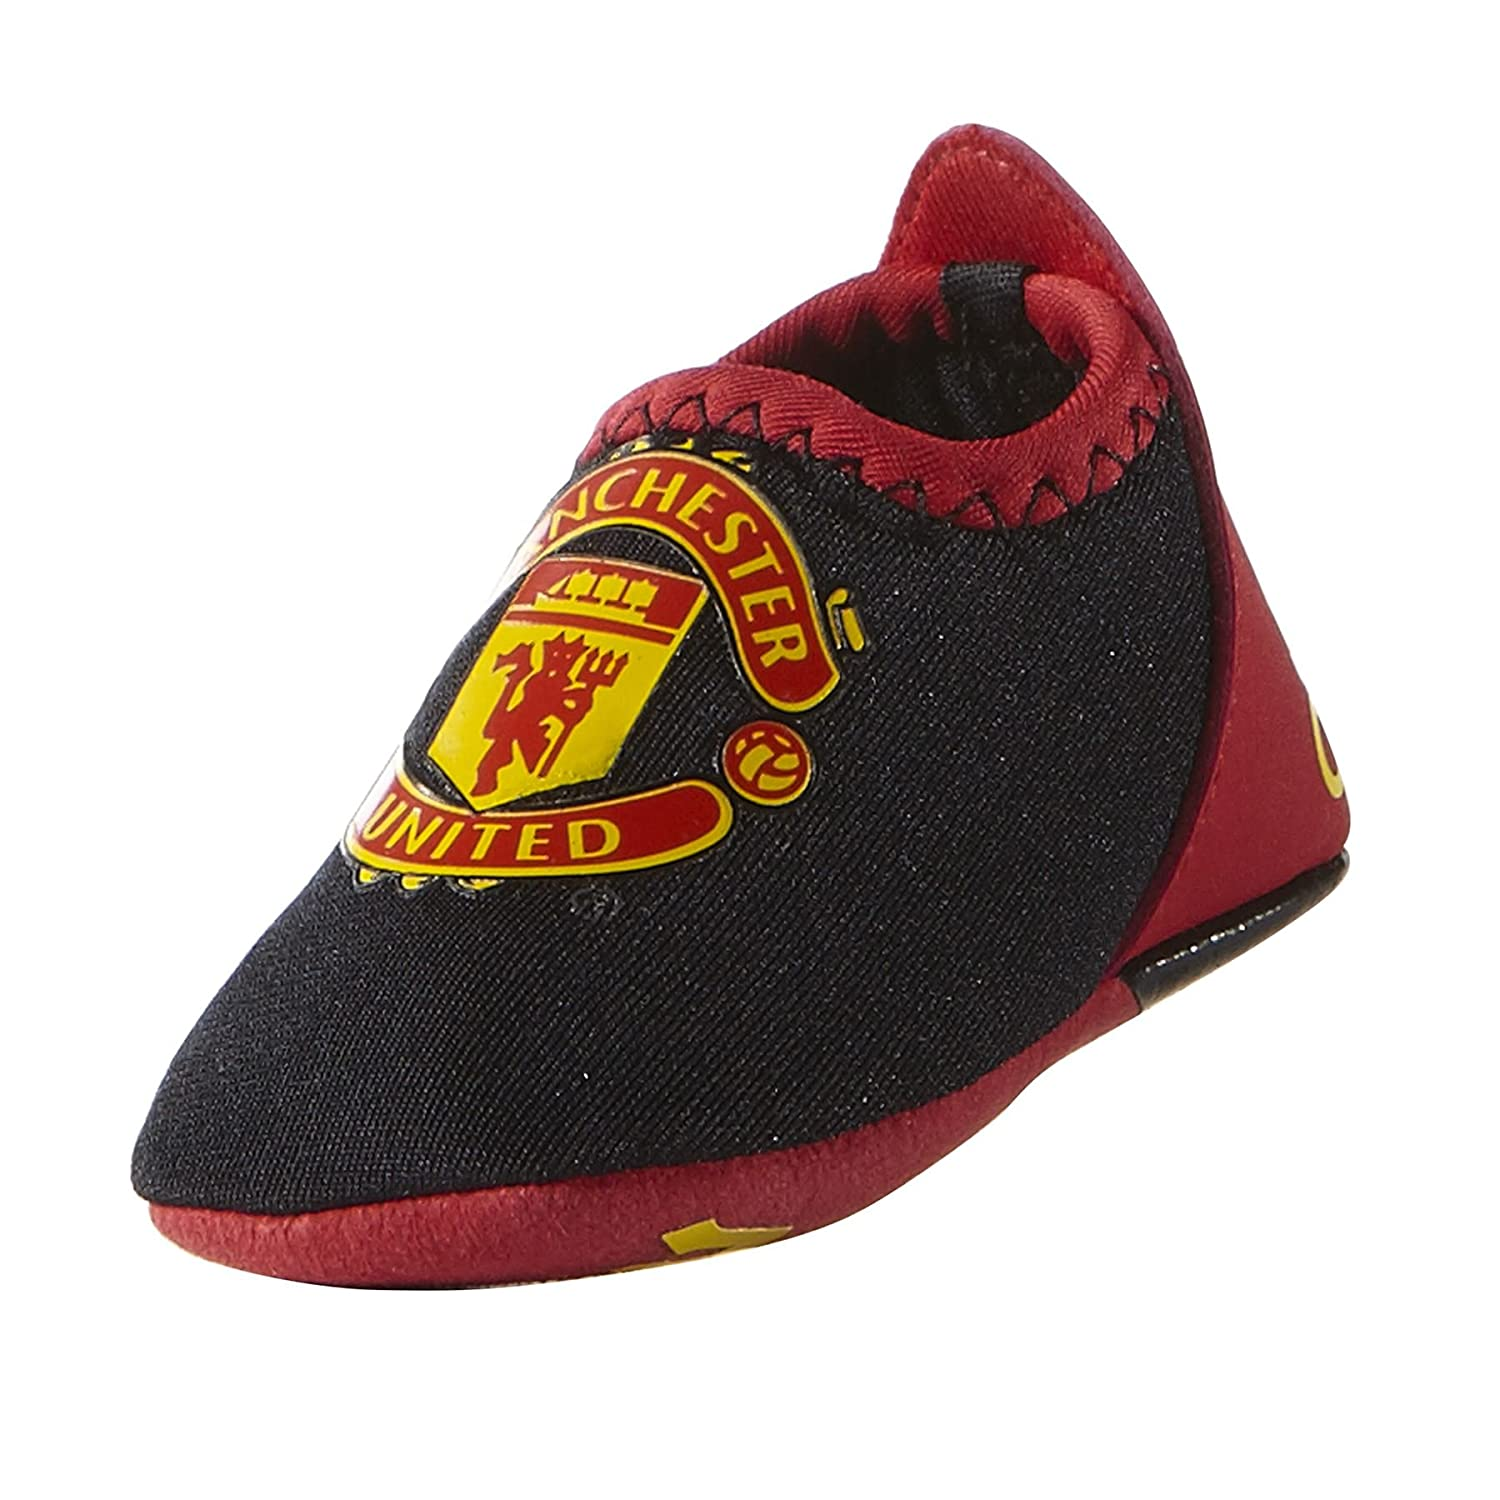 Crib Club United Shoes Manchester Adidas Pack Infants Crest Baby WEBQxoerdC